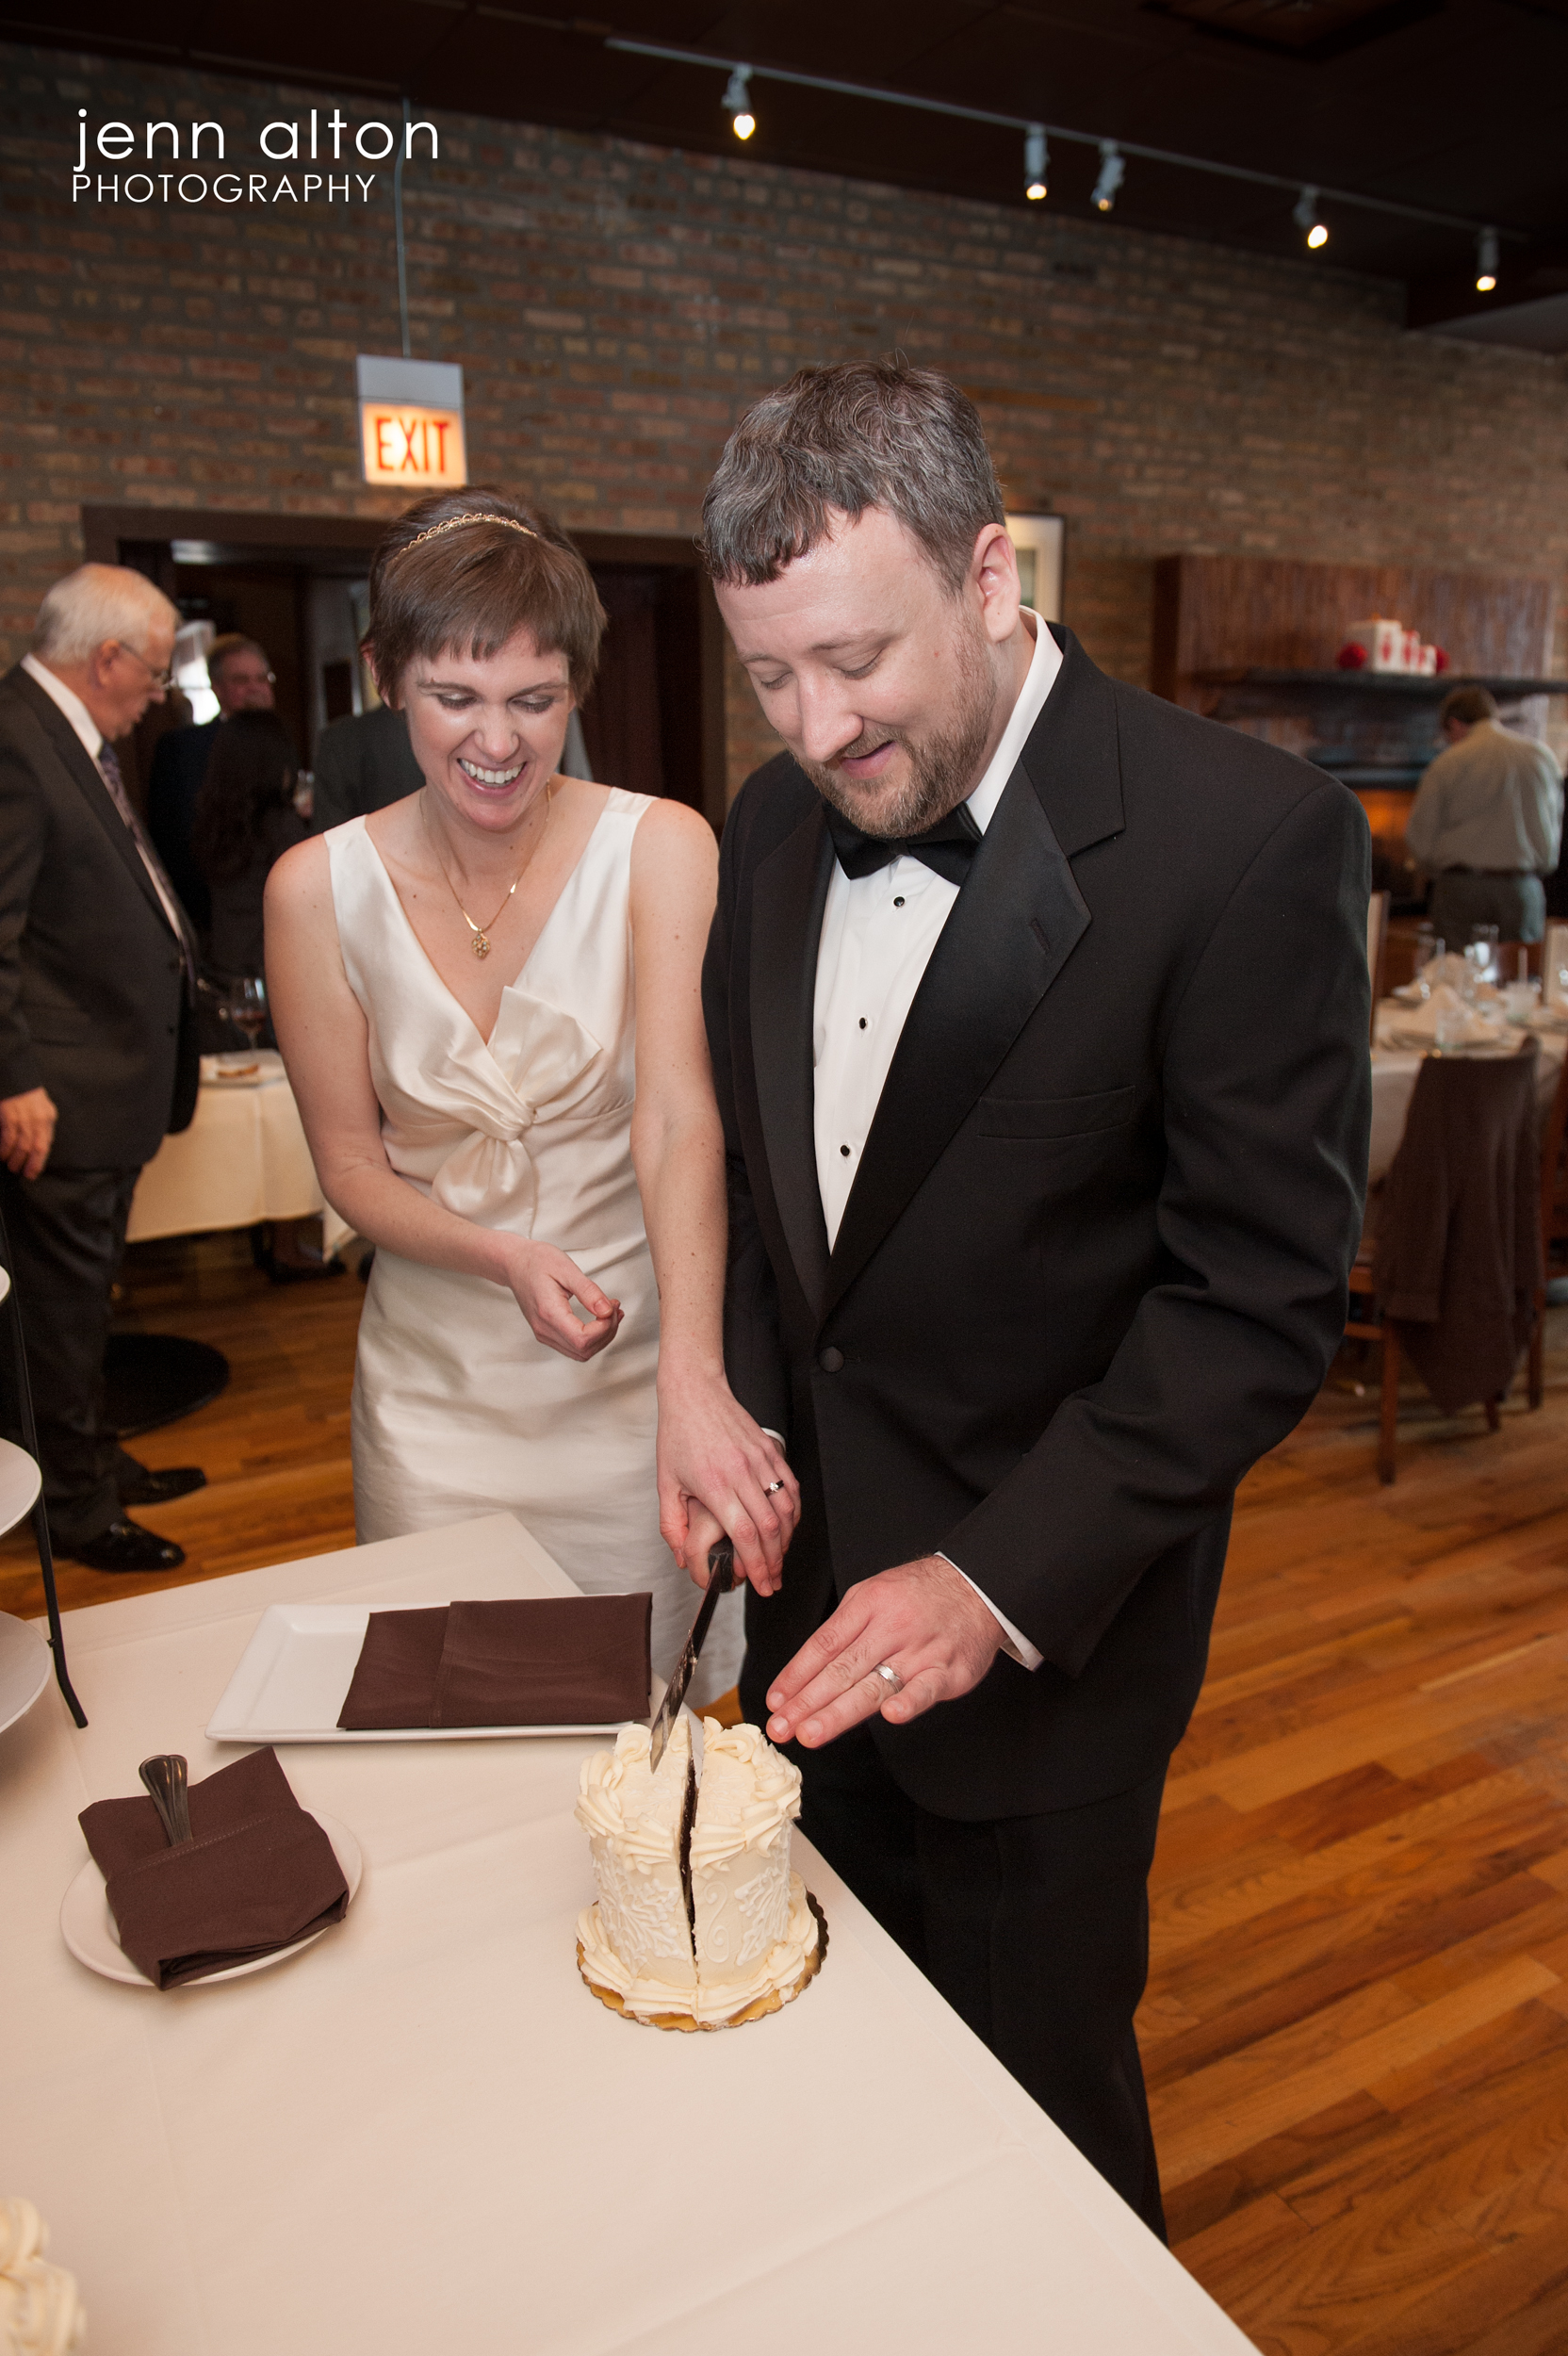 Cake cutting, West Town Bakery & Diner